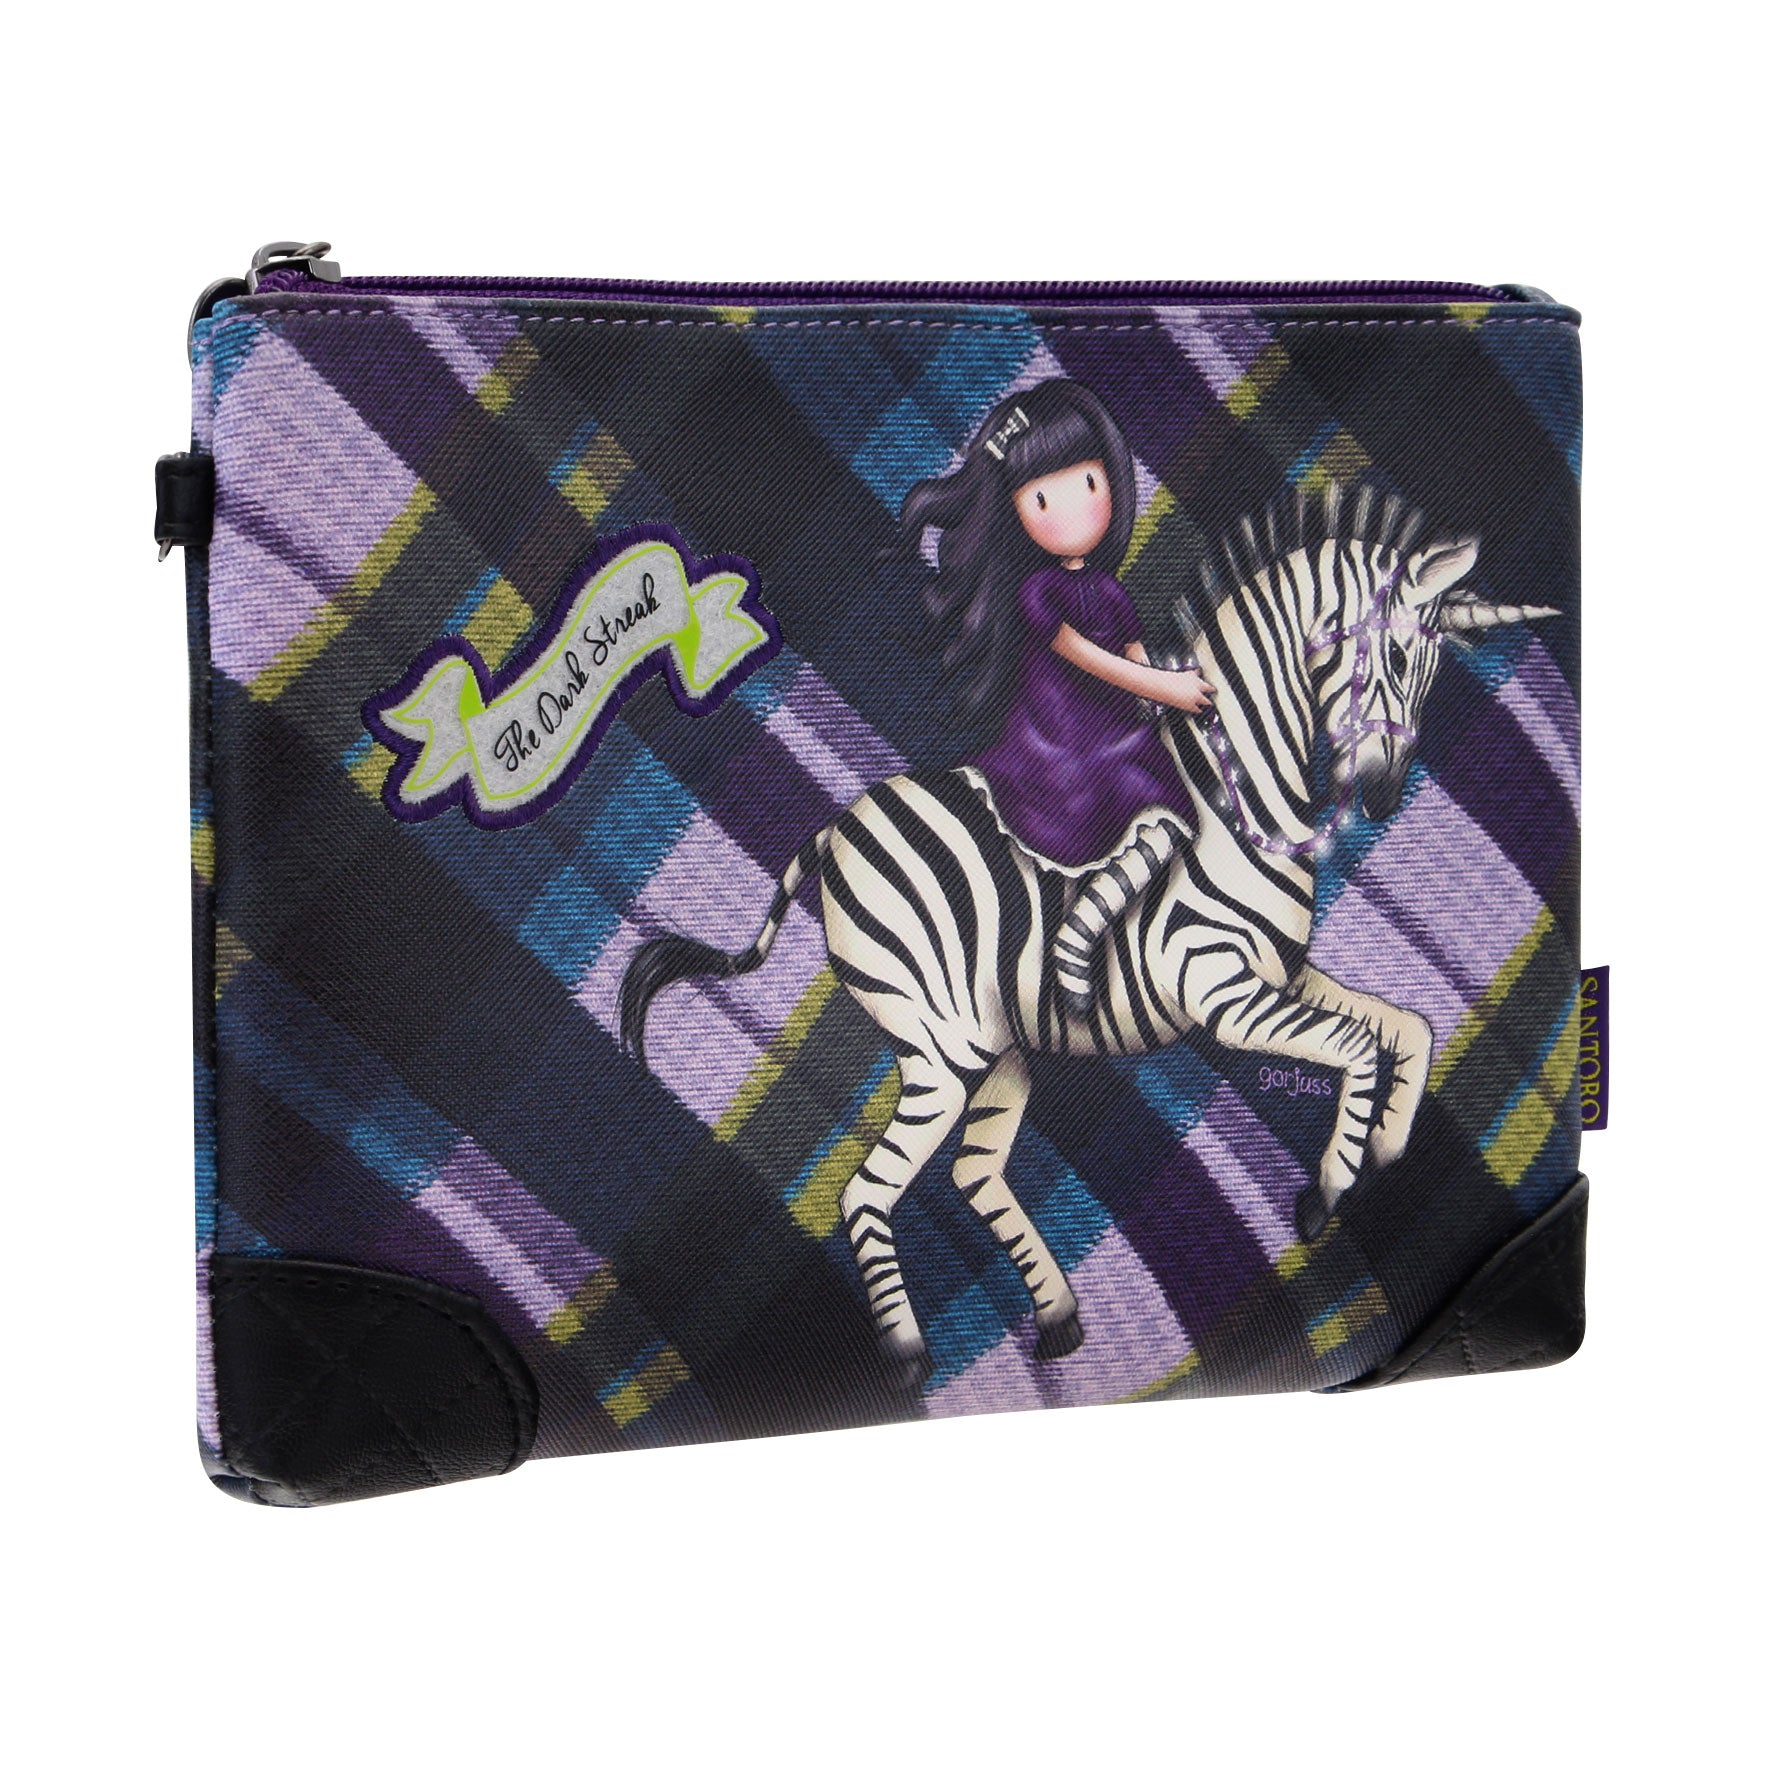 Gorjuss Tartan Accessory Pouch - The Dark Streak